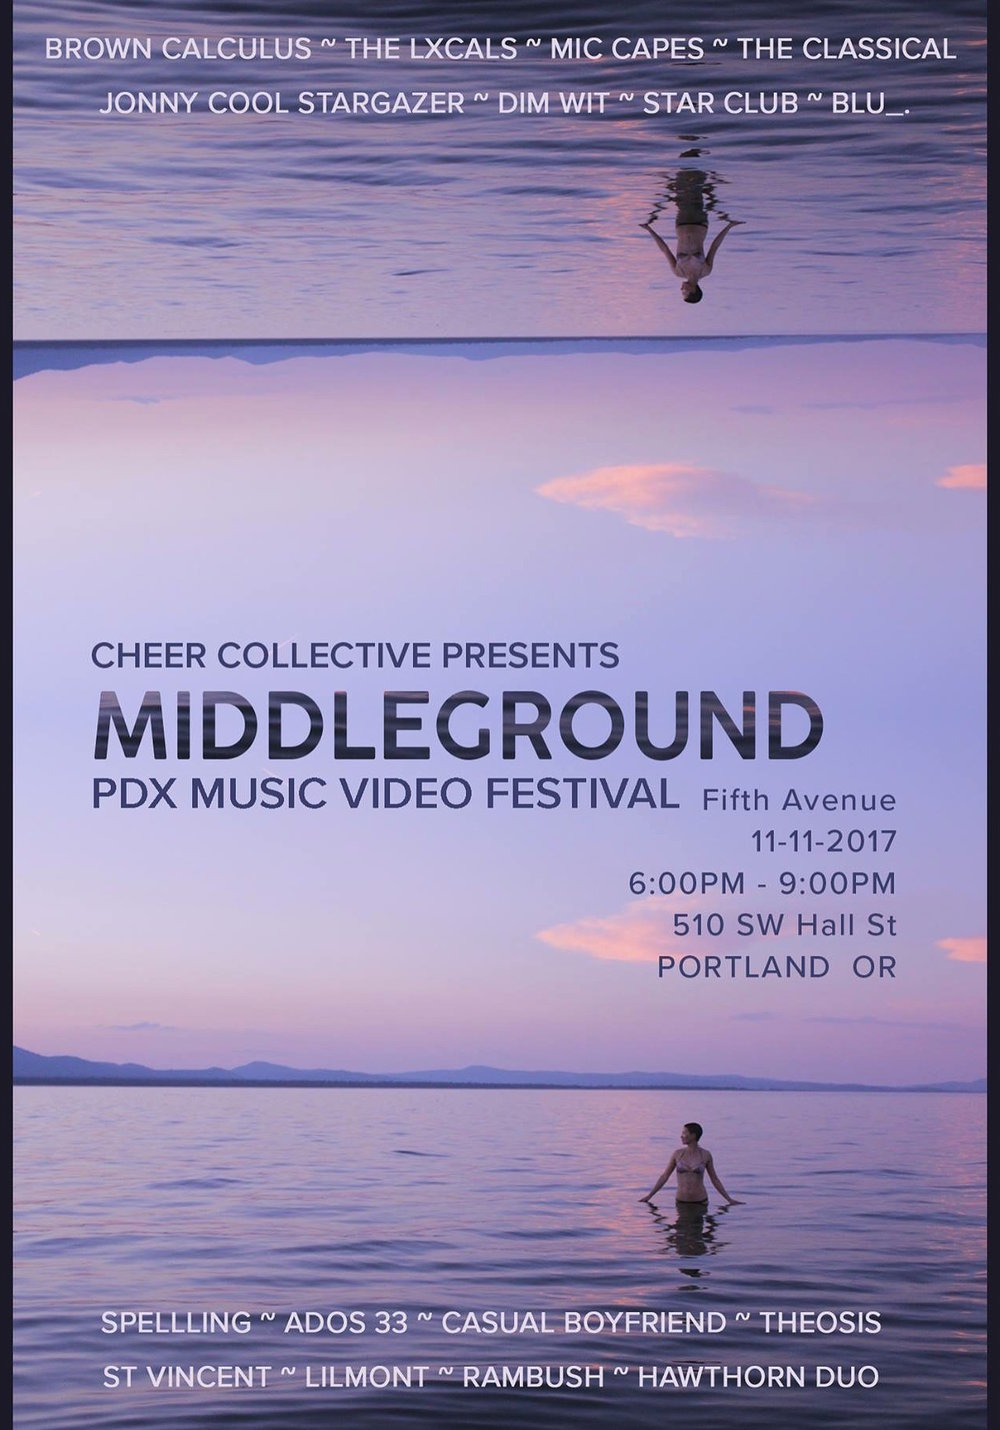 'Appalachia' Video Featured In Middleground PDX Video Festival